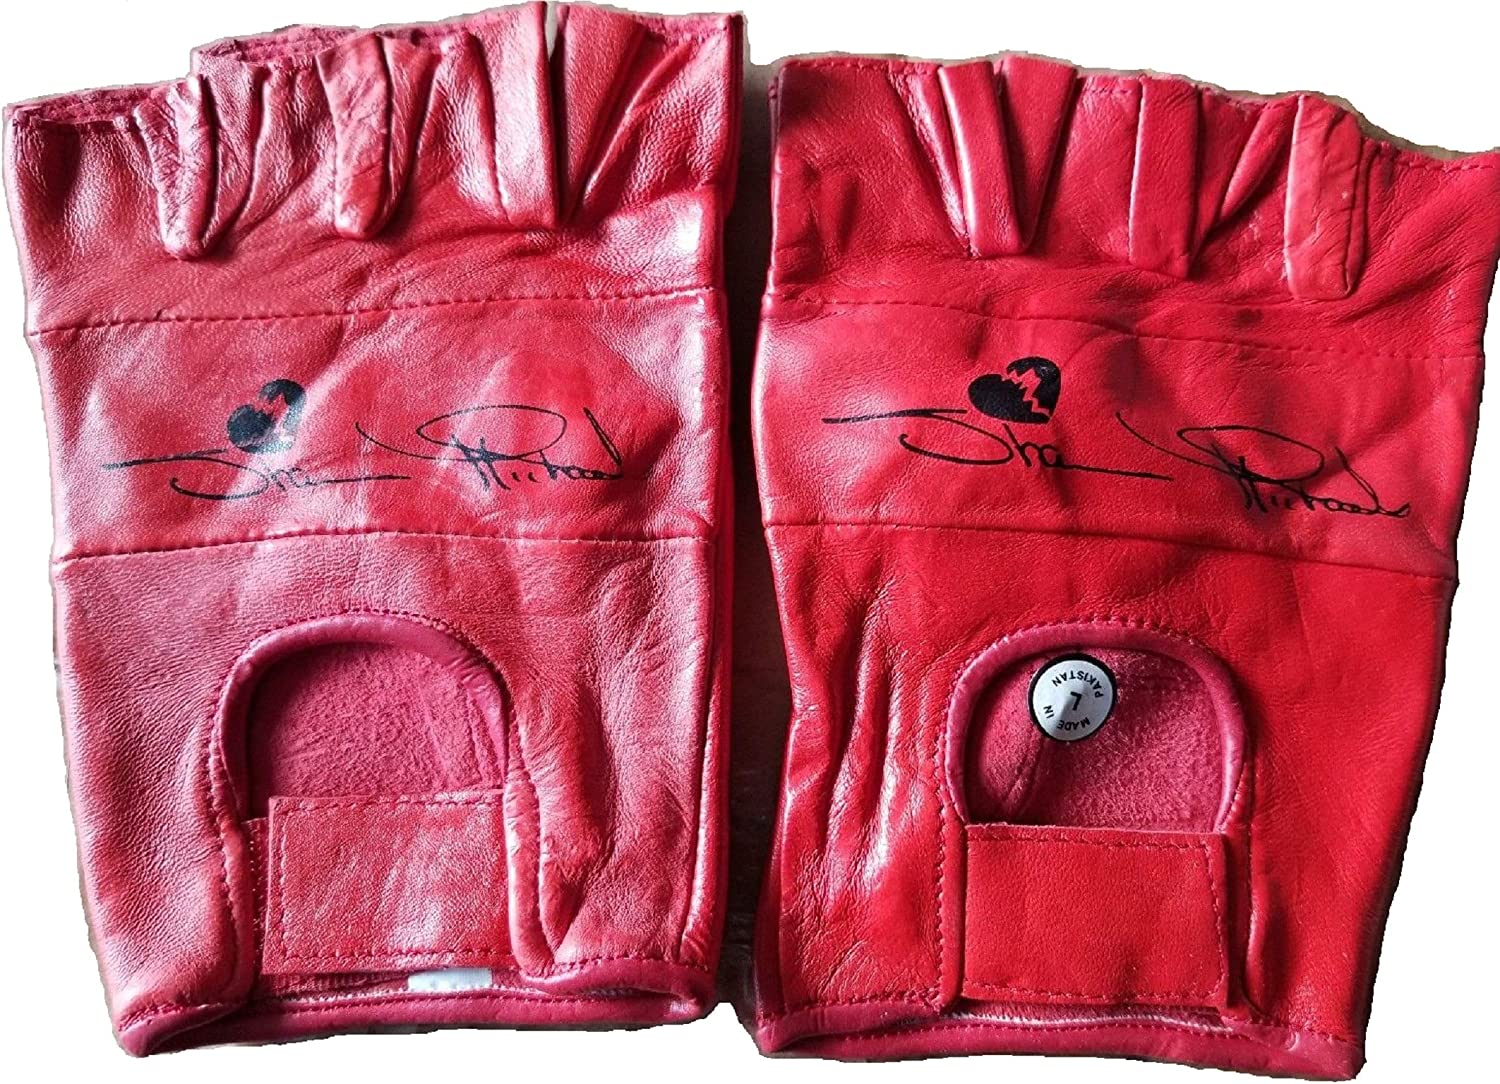 WWF The Heartbreak Kid Shawn Michaels Red Leather Gloves WWE HBK Size small